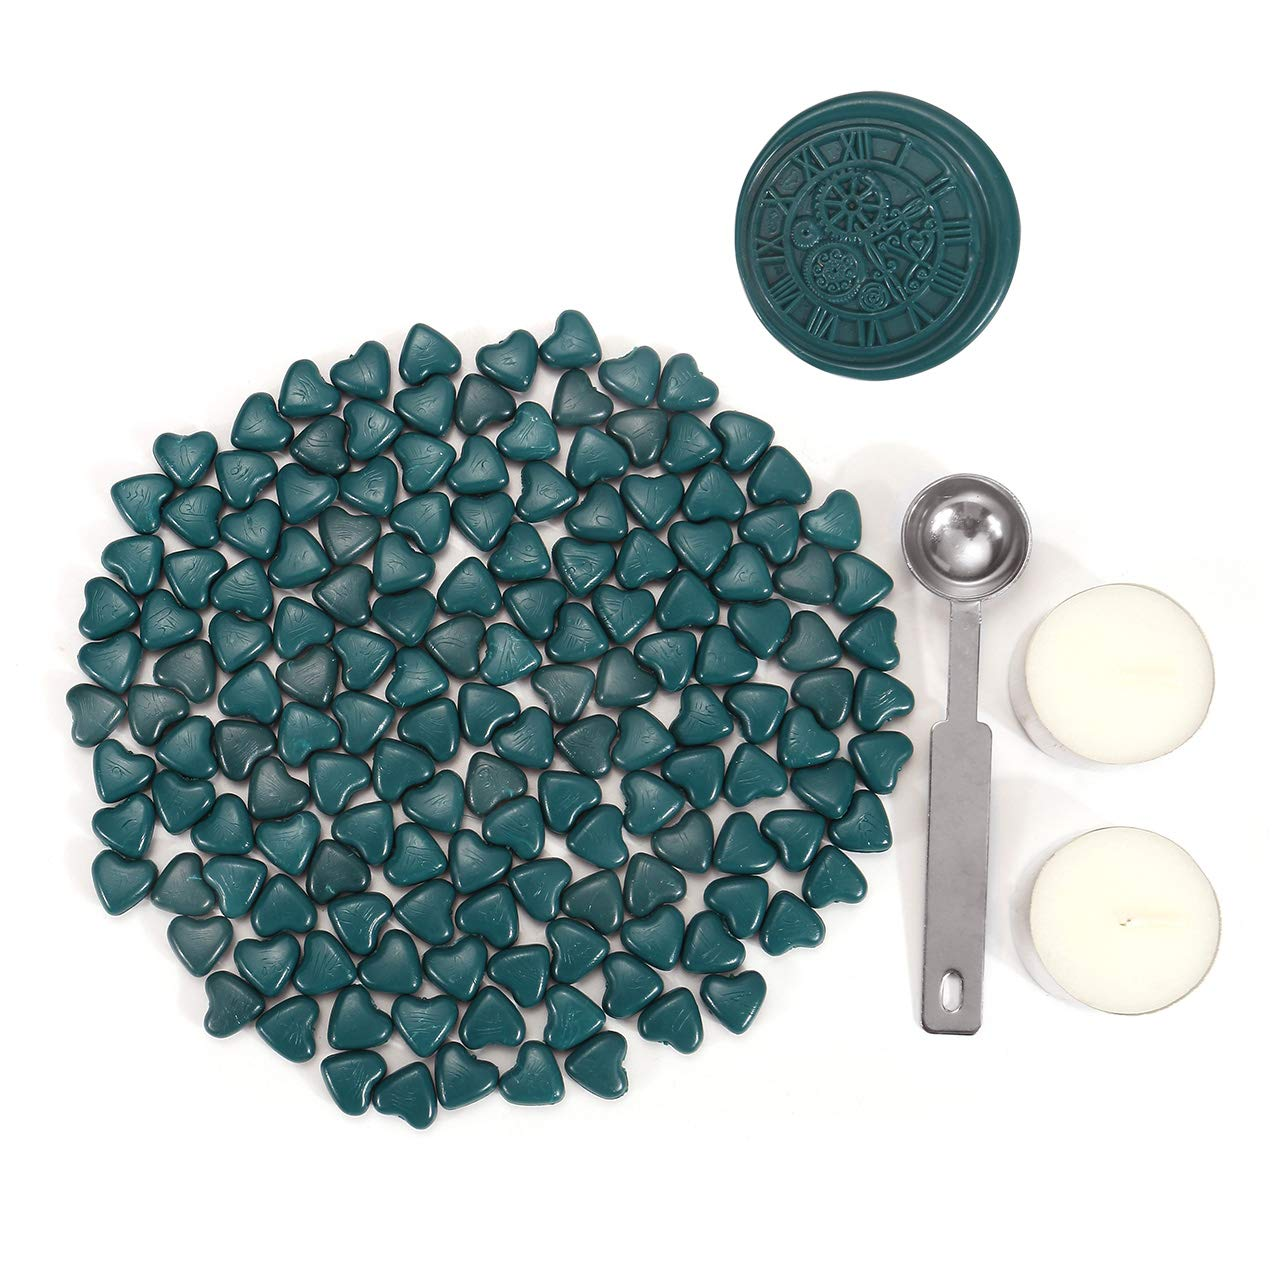 Sealing Wax Beads, Yoption 150 Pieces Heart Shape Wax Seal Beads with a Wax Melting Spoon and 2 Pieces Candles for Wax Seal Stamp (Peacock Blue)